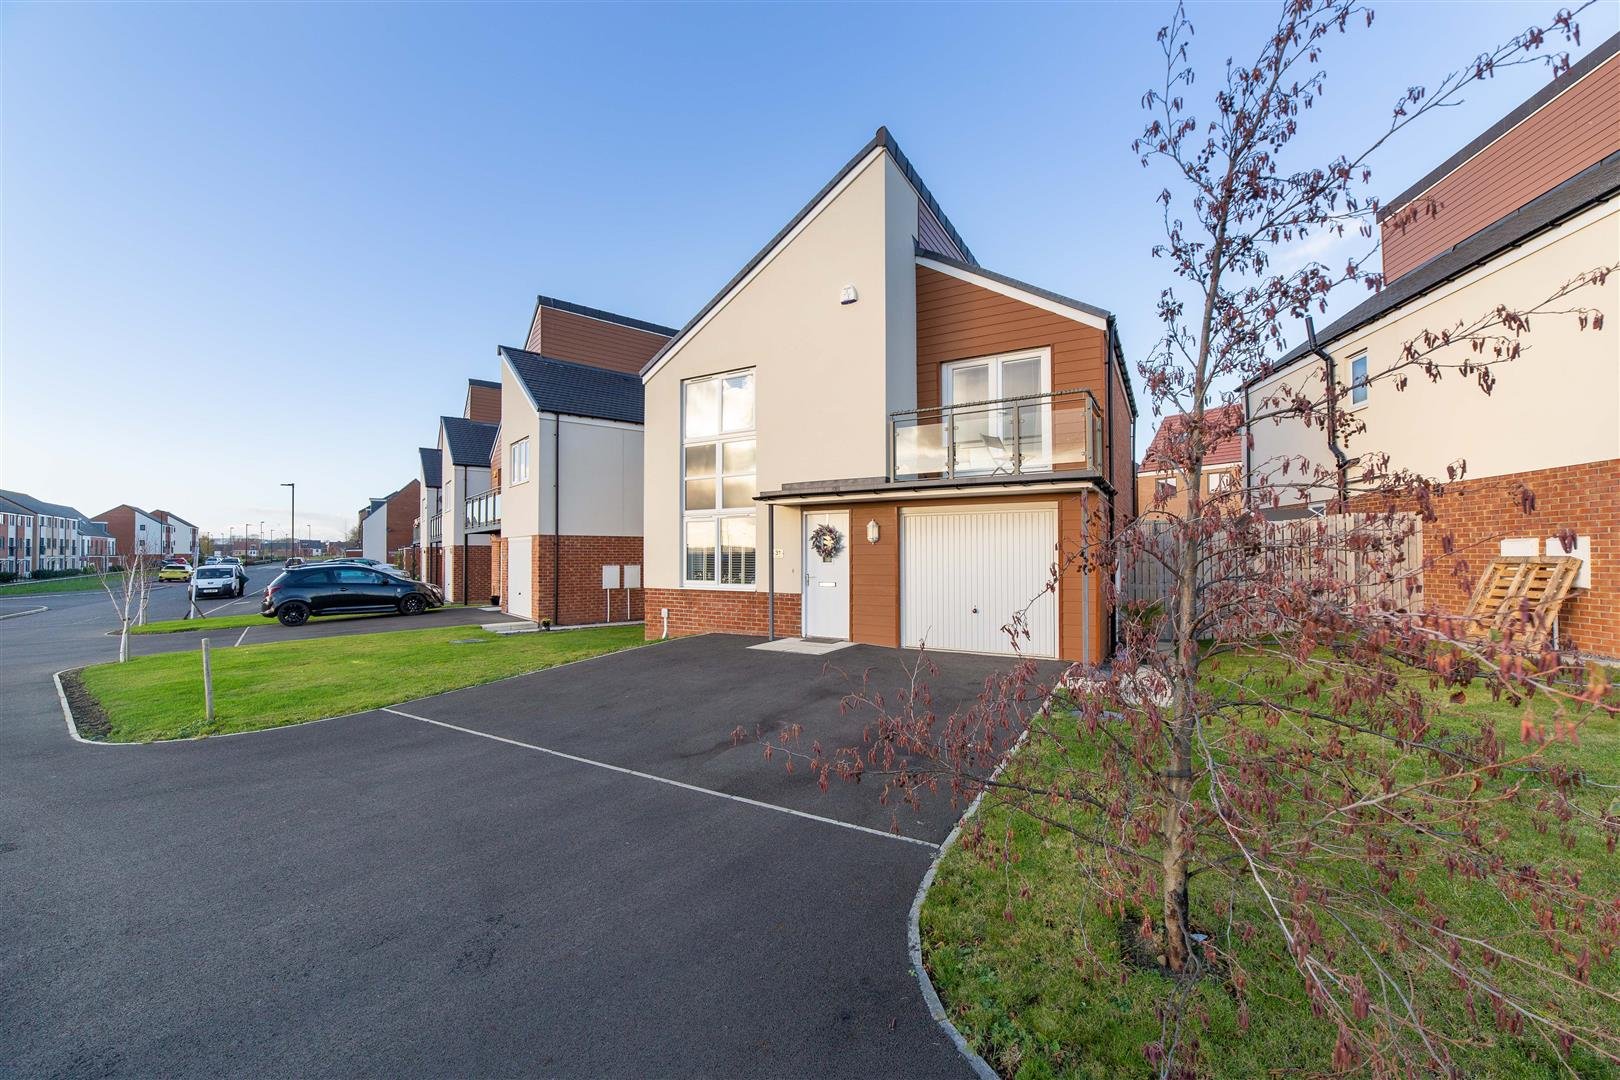 4 bed detached house for sale in Newcastle Upon Tyne, NE13 9DR, NE13